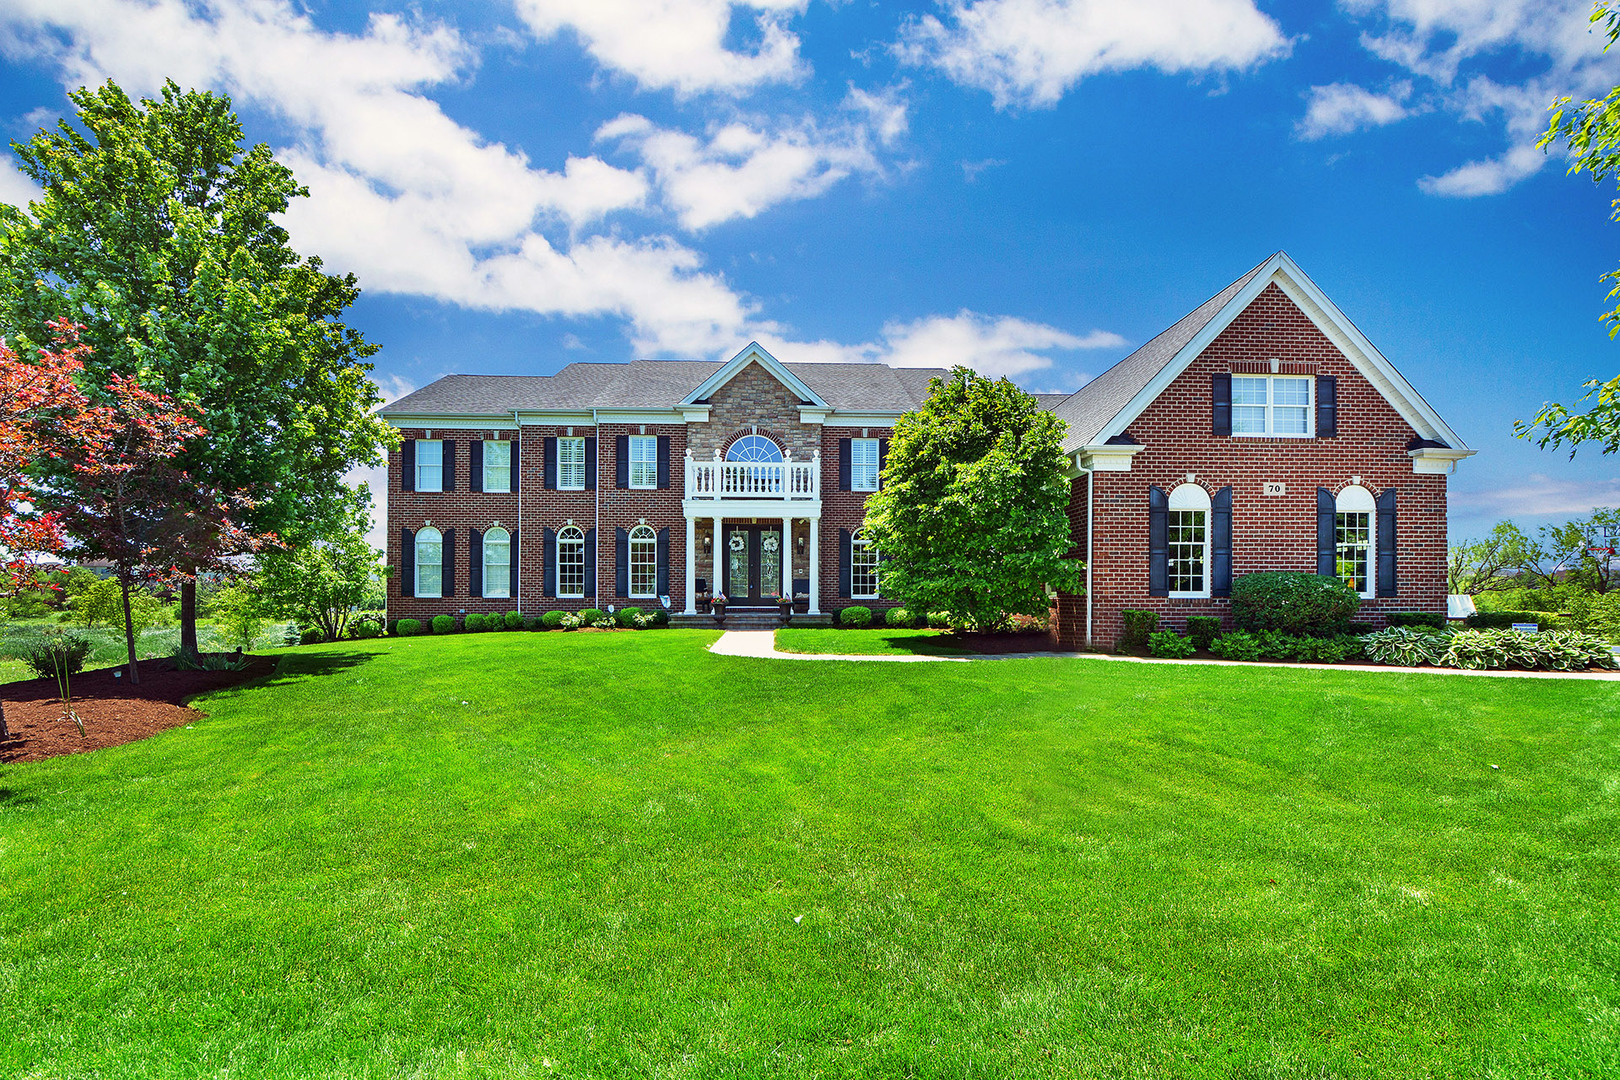 70 Tournament Drive, Hawthorn Woods, Illinois 60047